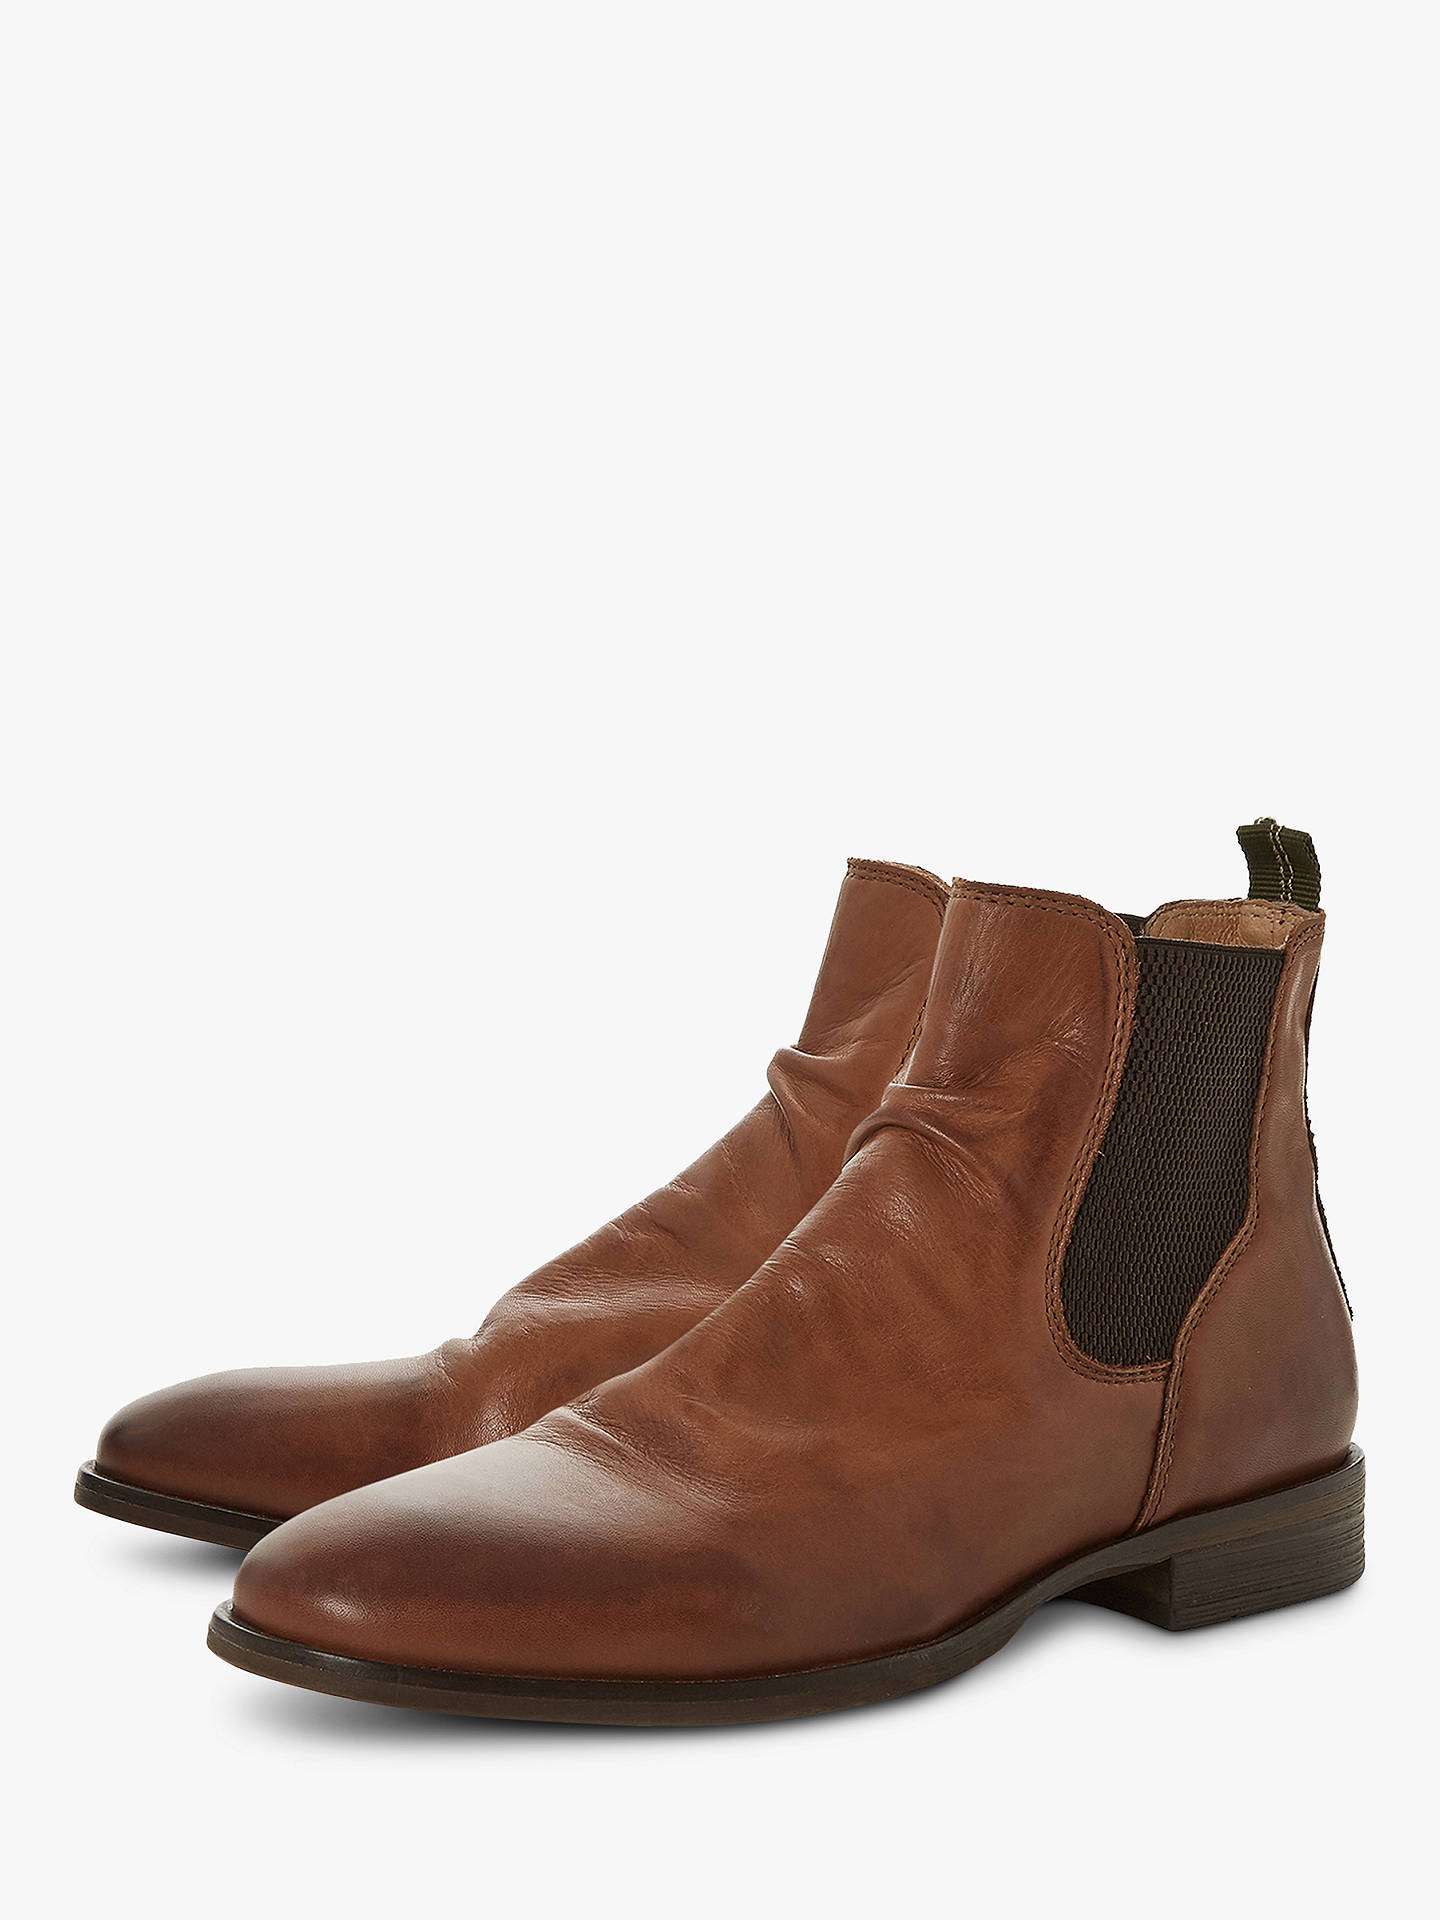 BuyBertie Cage Chelsea Boots, Brown, 6 Online at johnlewis.com